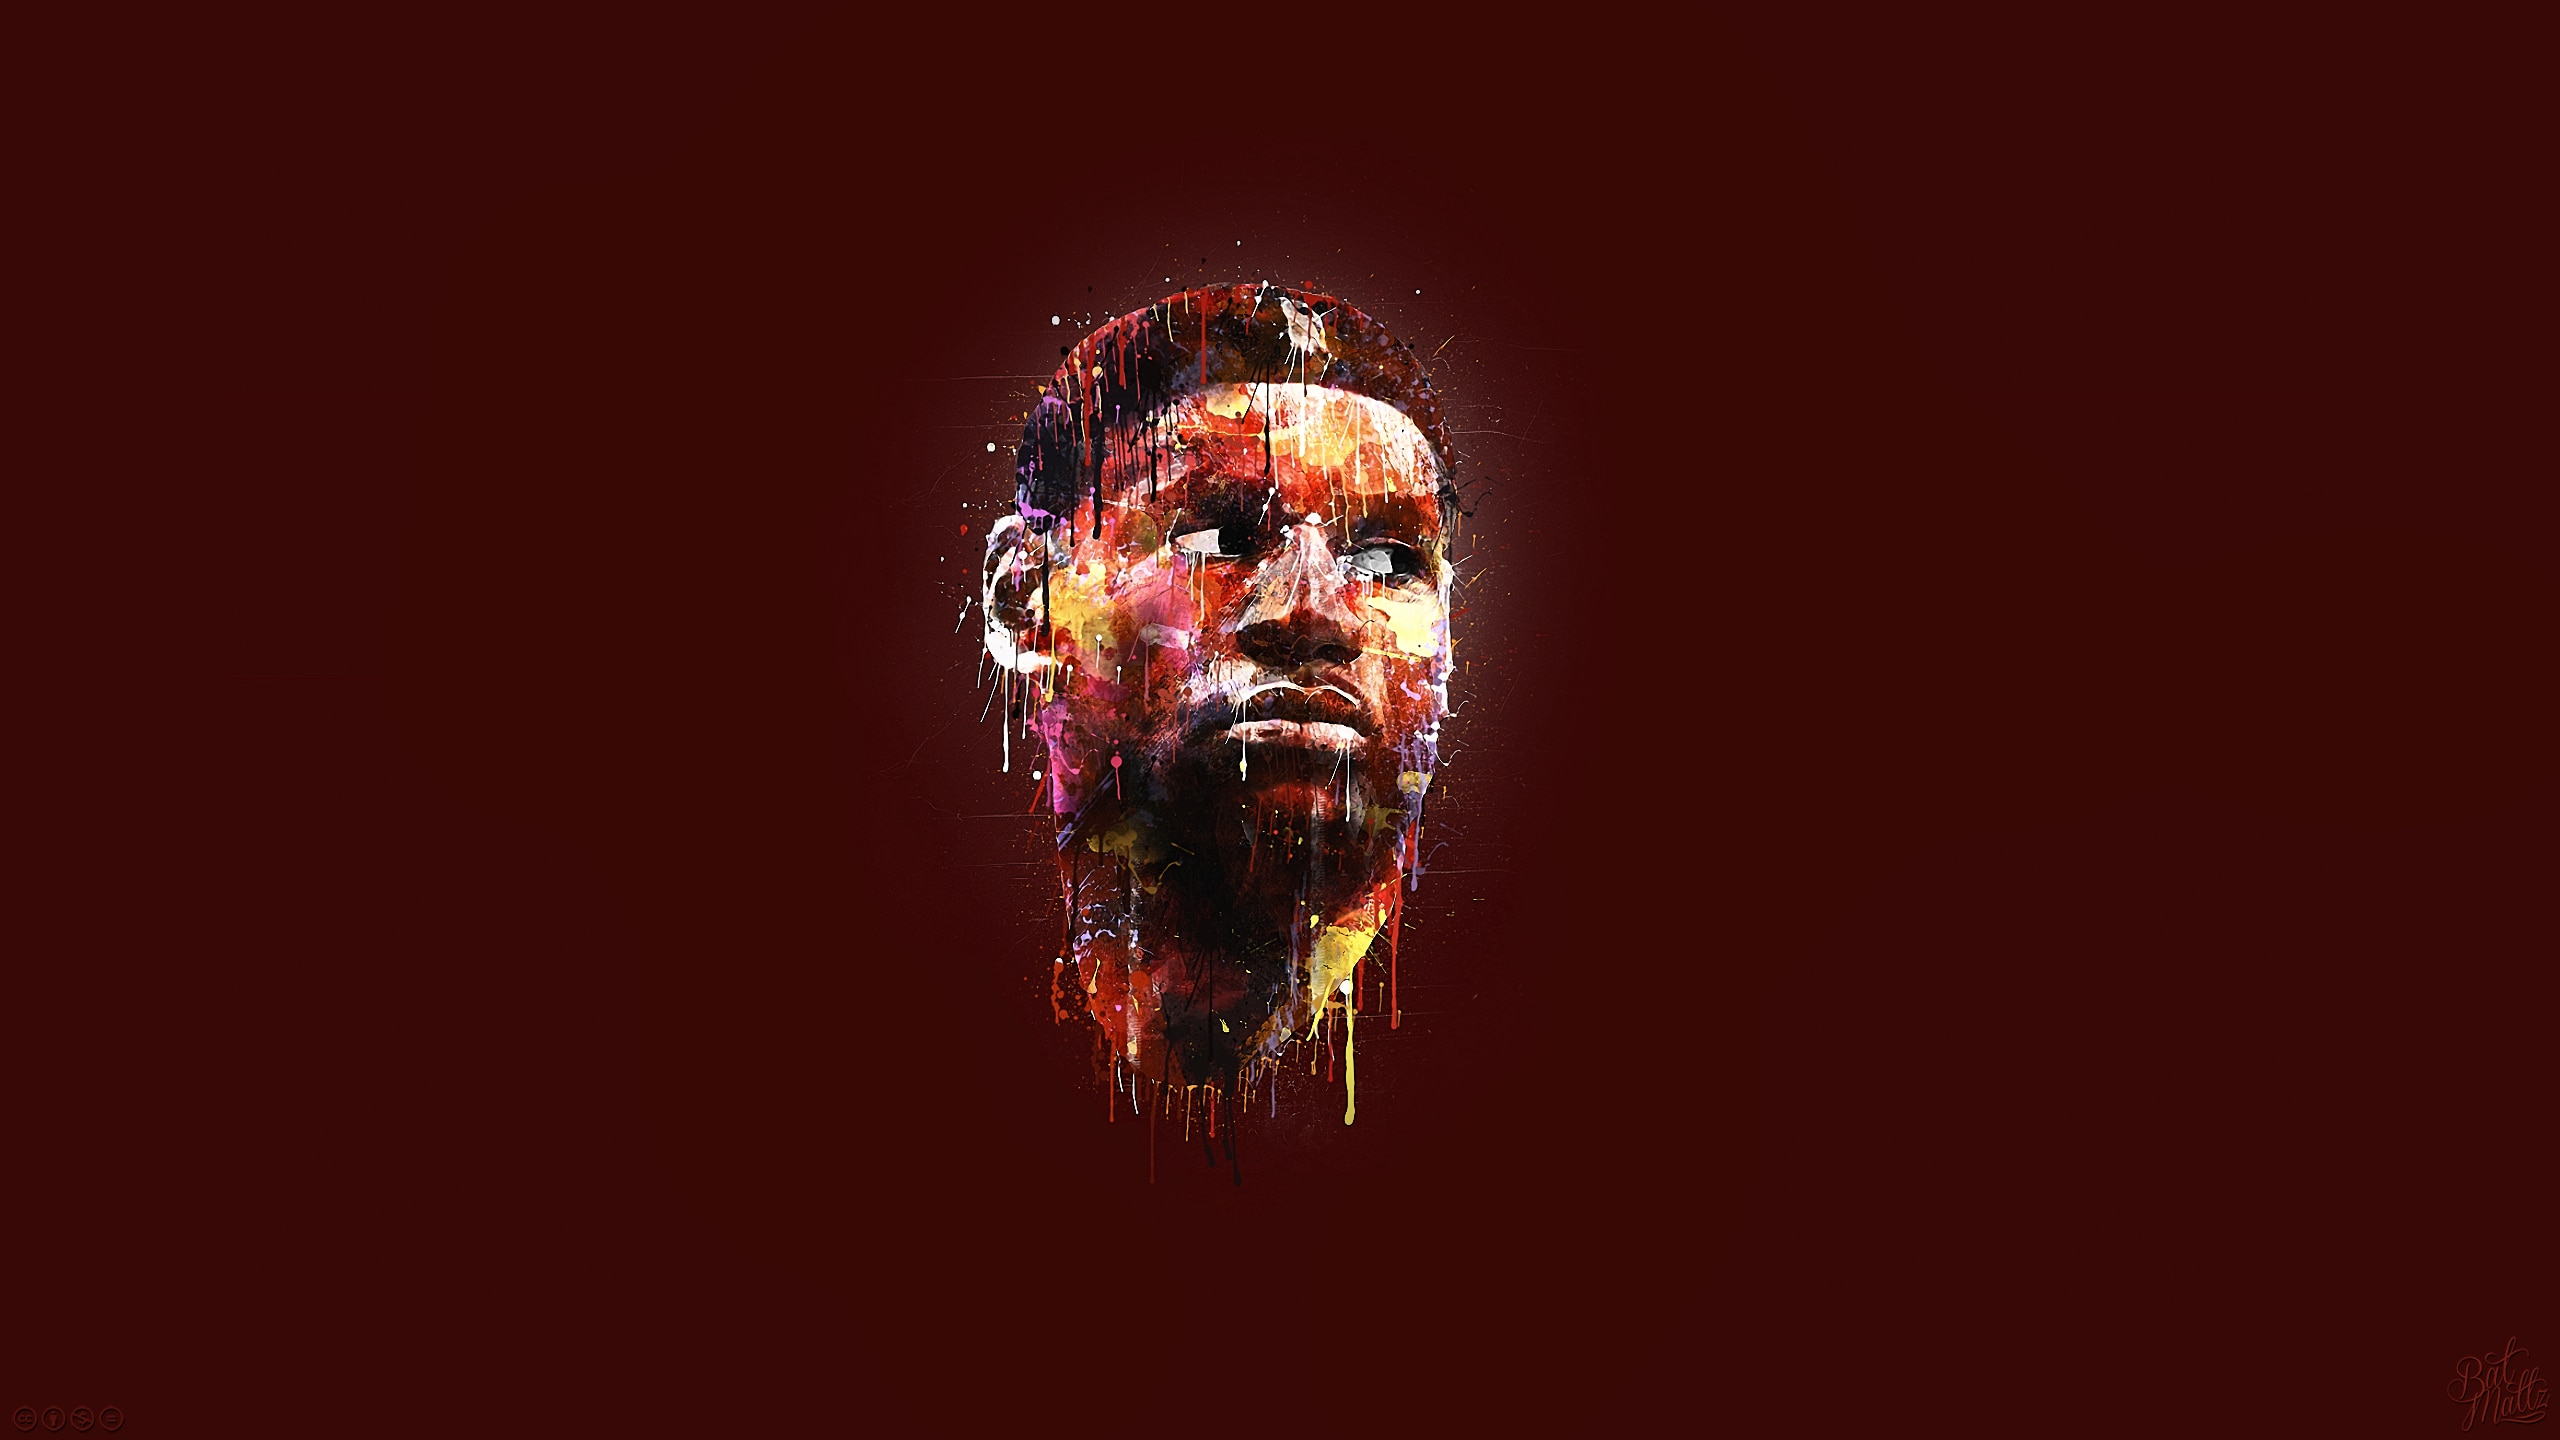 Fantastic Wallpaper Mac Lebron James - fan-miurlano-2560x1440  Trends_833359.png